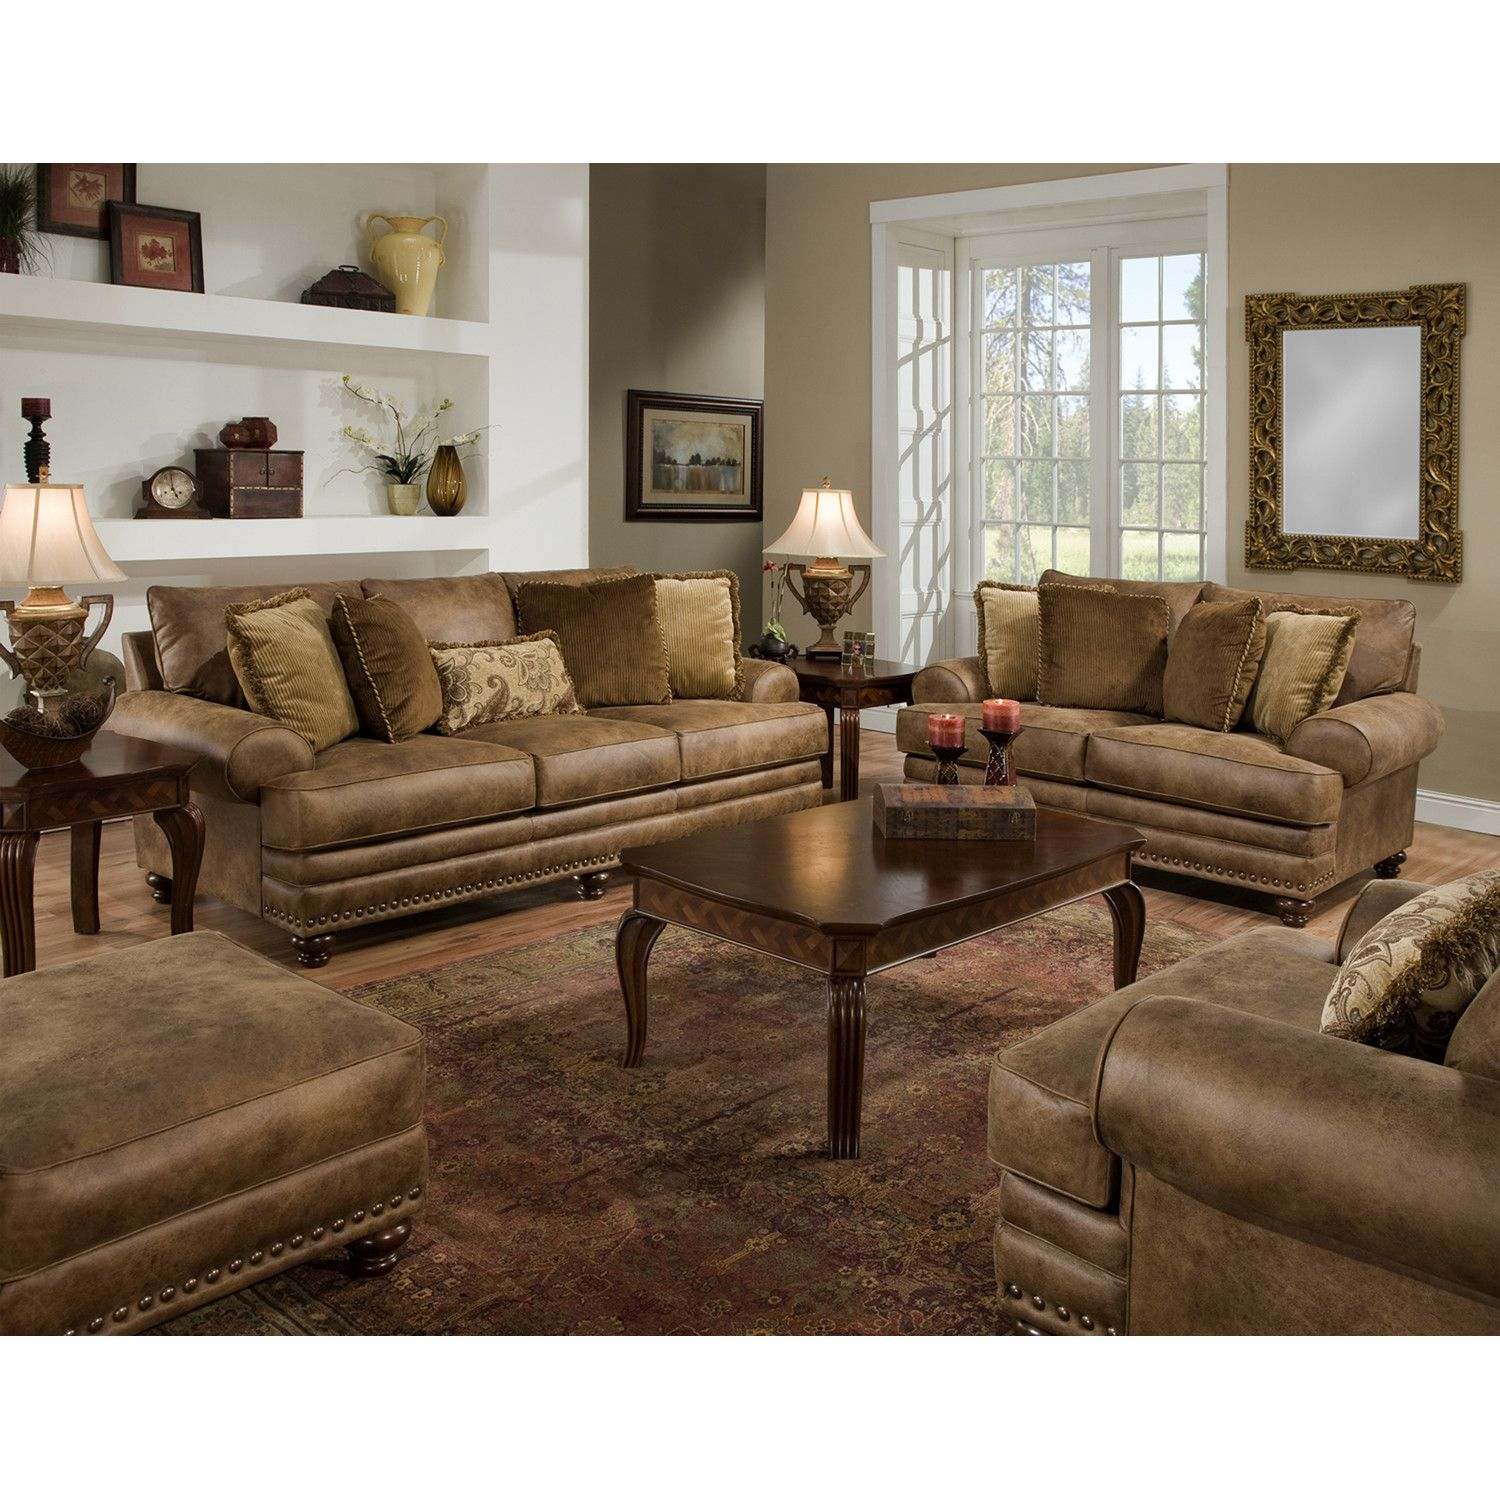 Claremore Sofa In 2019 Living Room Leather Living Room